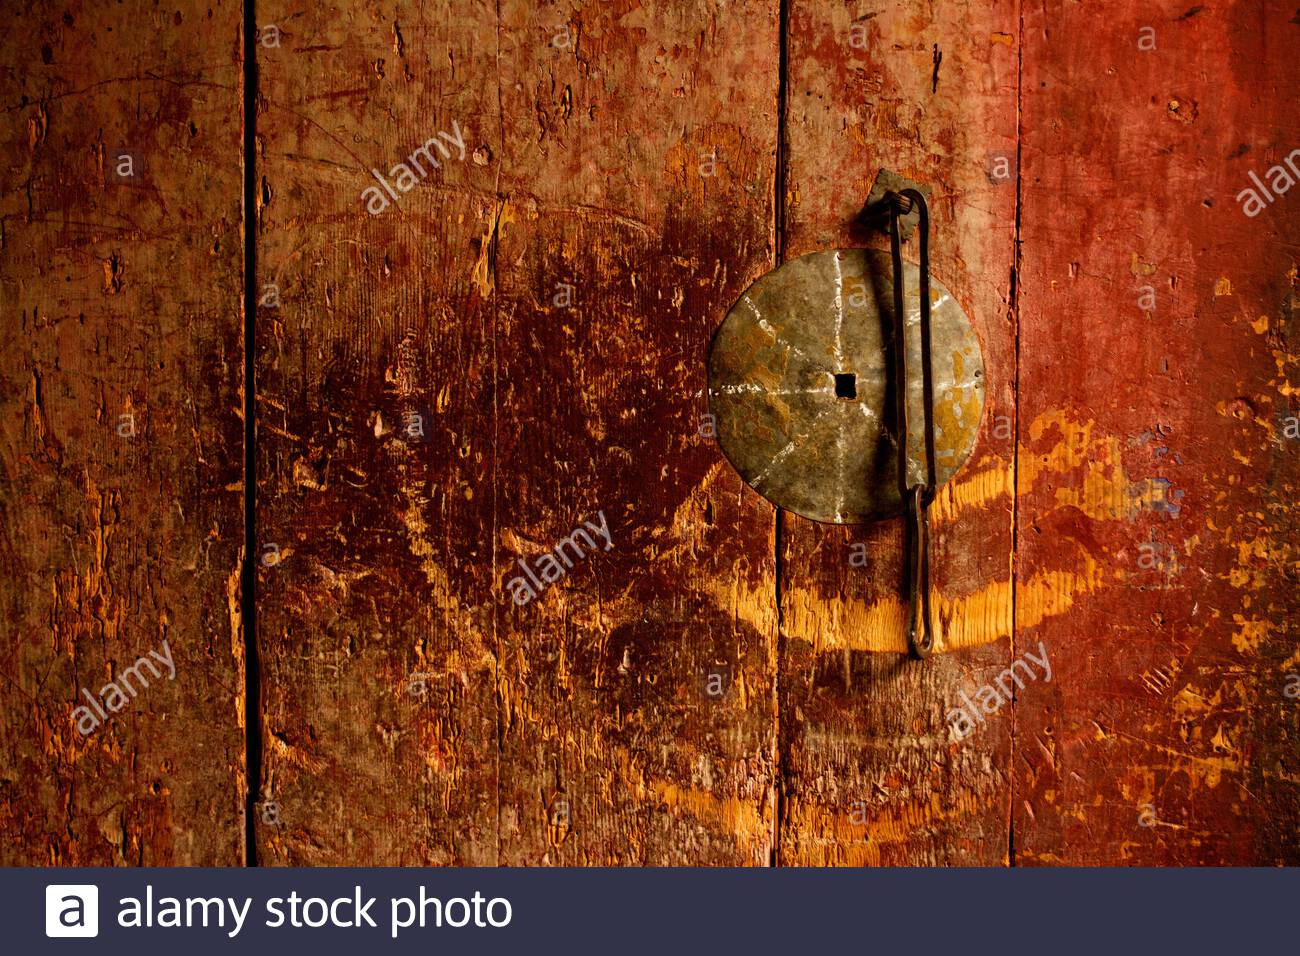 a-close-up-of-a-well-worn-door-at-wangdichholing-palace-built-in-1857-in-jakar-in-the-bumthang-district-of-bhutan-2B11Y53.jpg